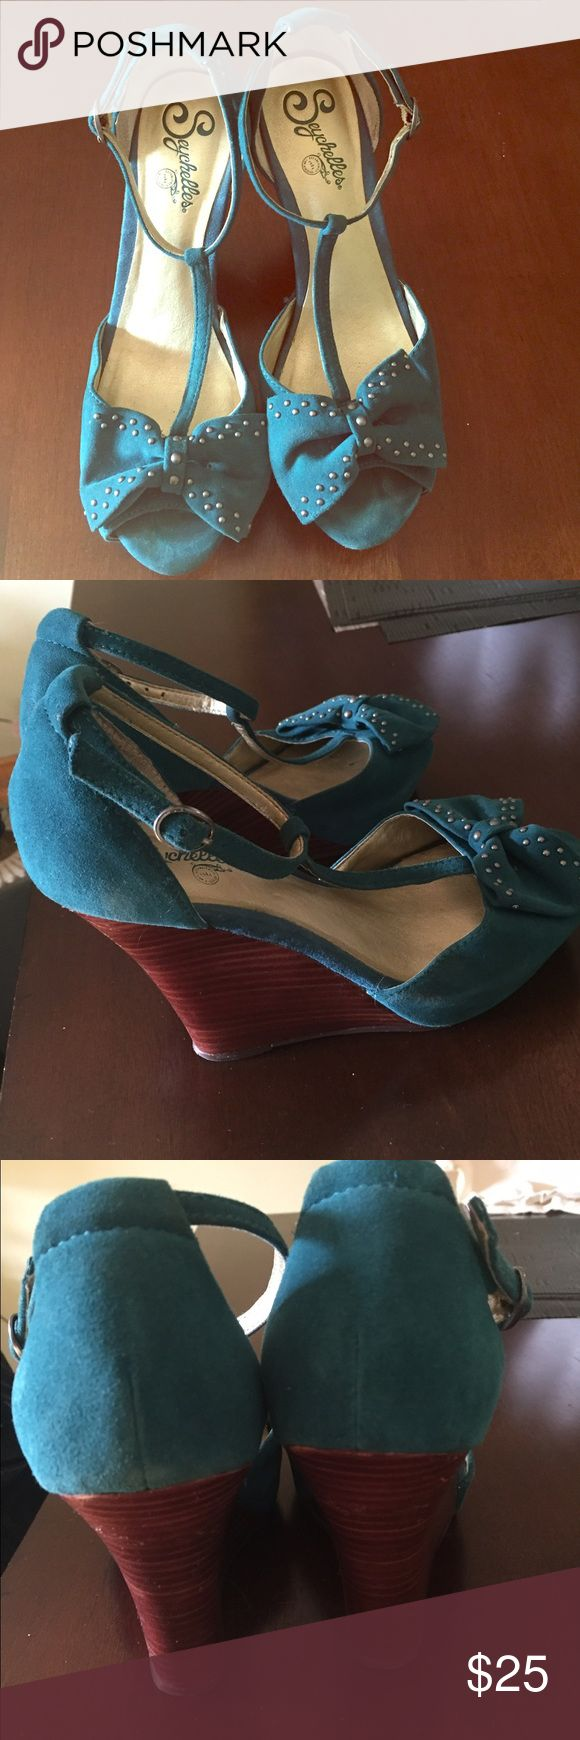 Seychelles shoes In good condition!! Seychelles Shoes Wedges